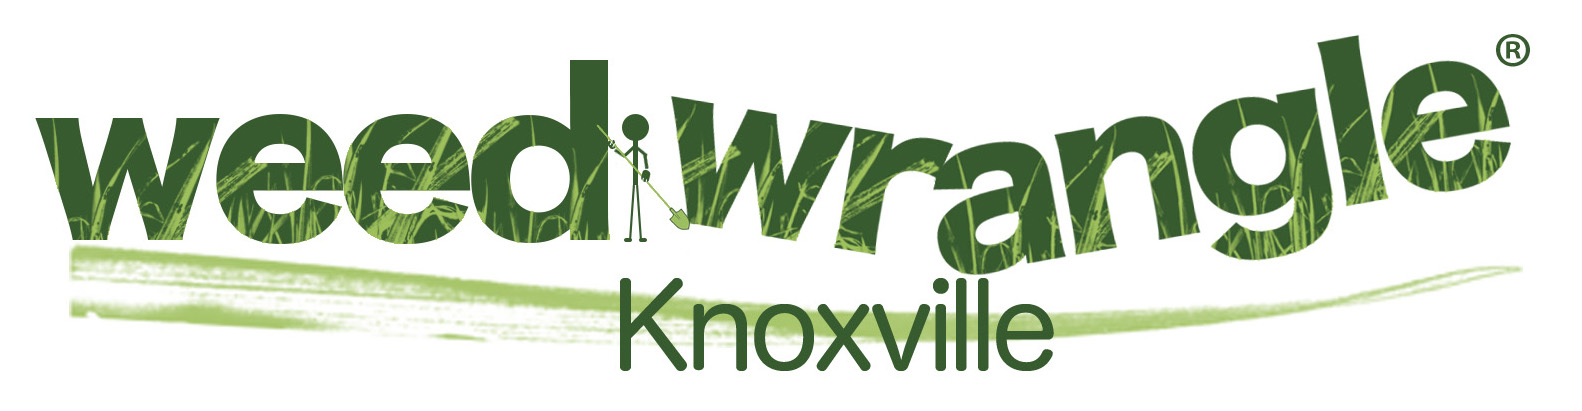 ww-knoxville